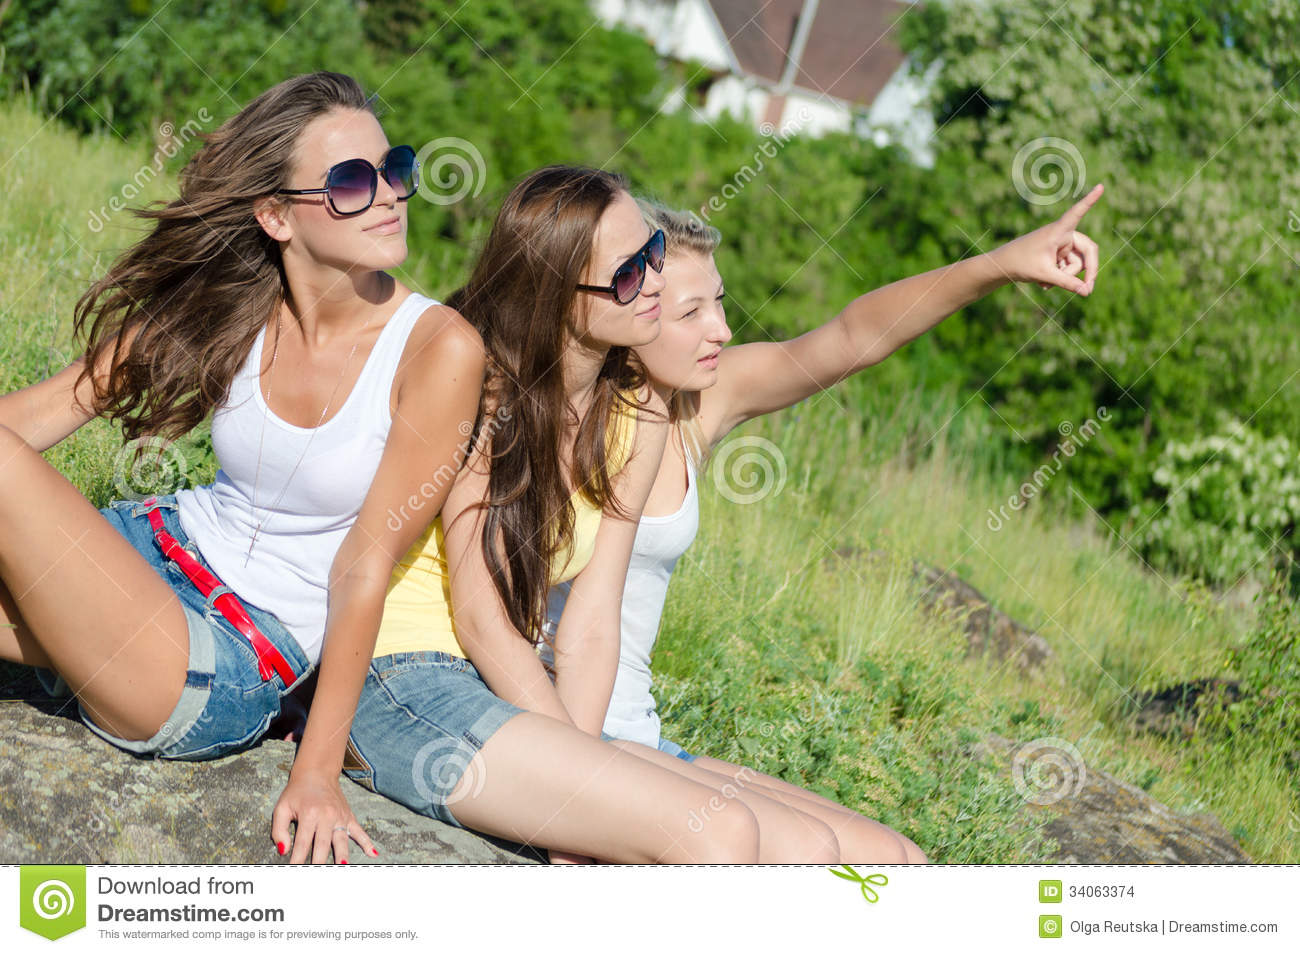 Escala Seattle Floor Plans A Smiling Dreamstime Young Girl Outdoors Three Happy Girls